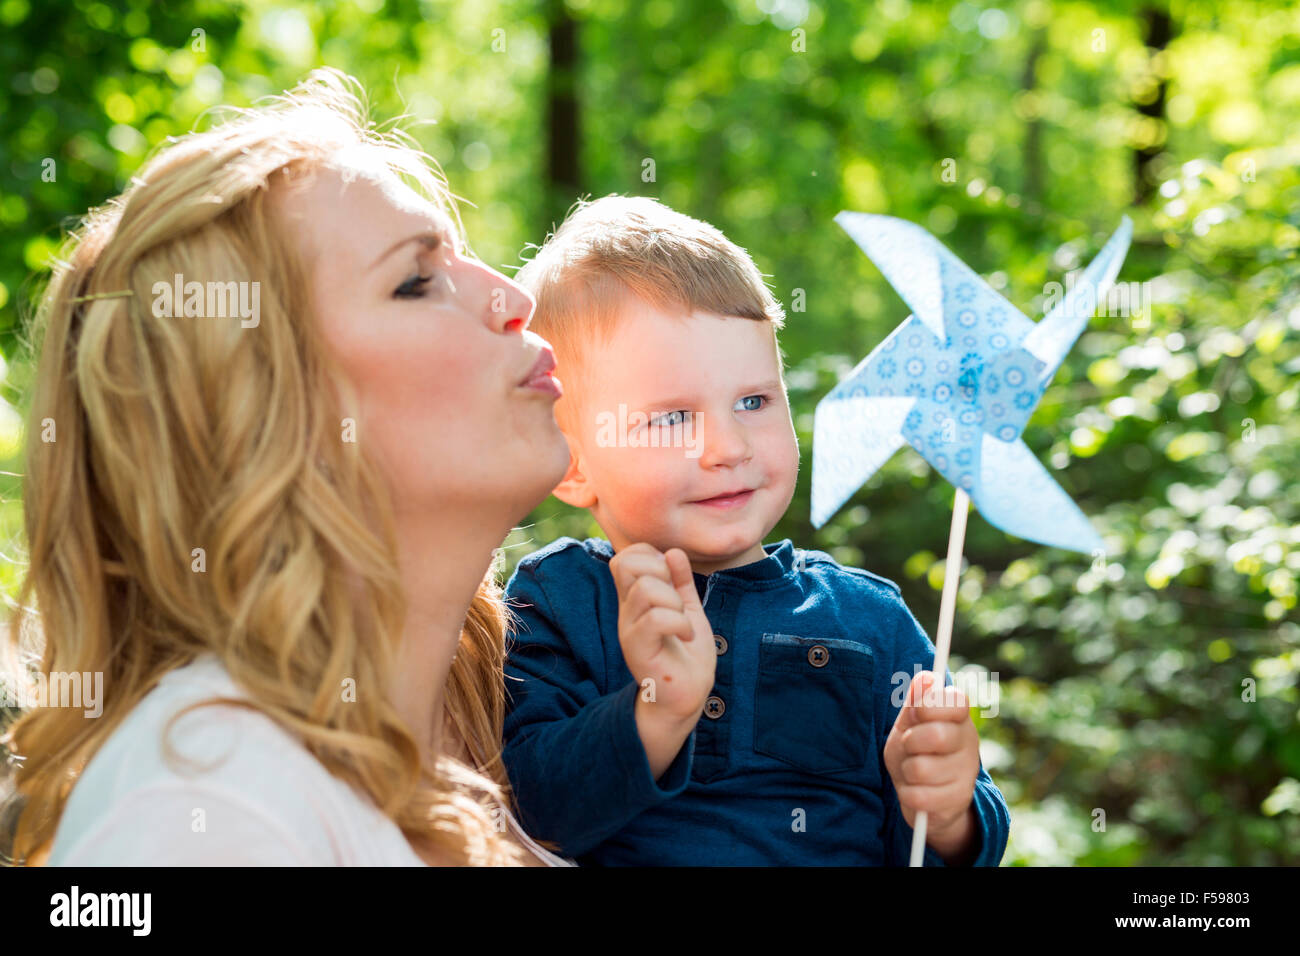 Beautiful women is blowing a paper windmill with her little son - Stock Image